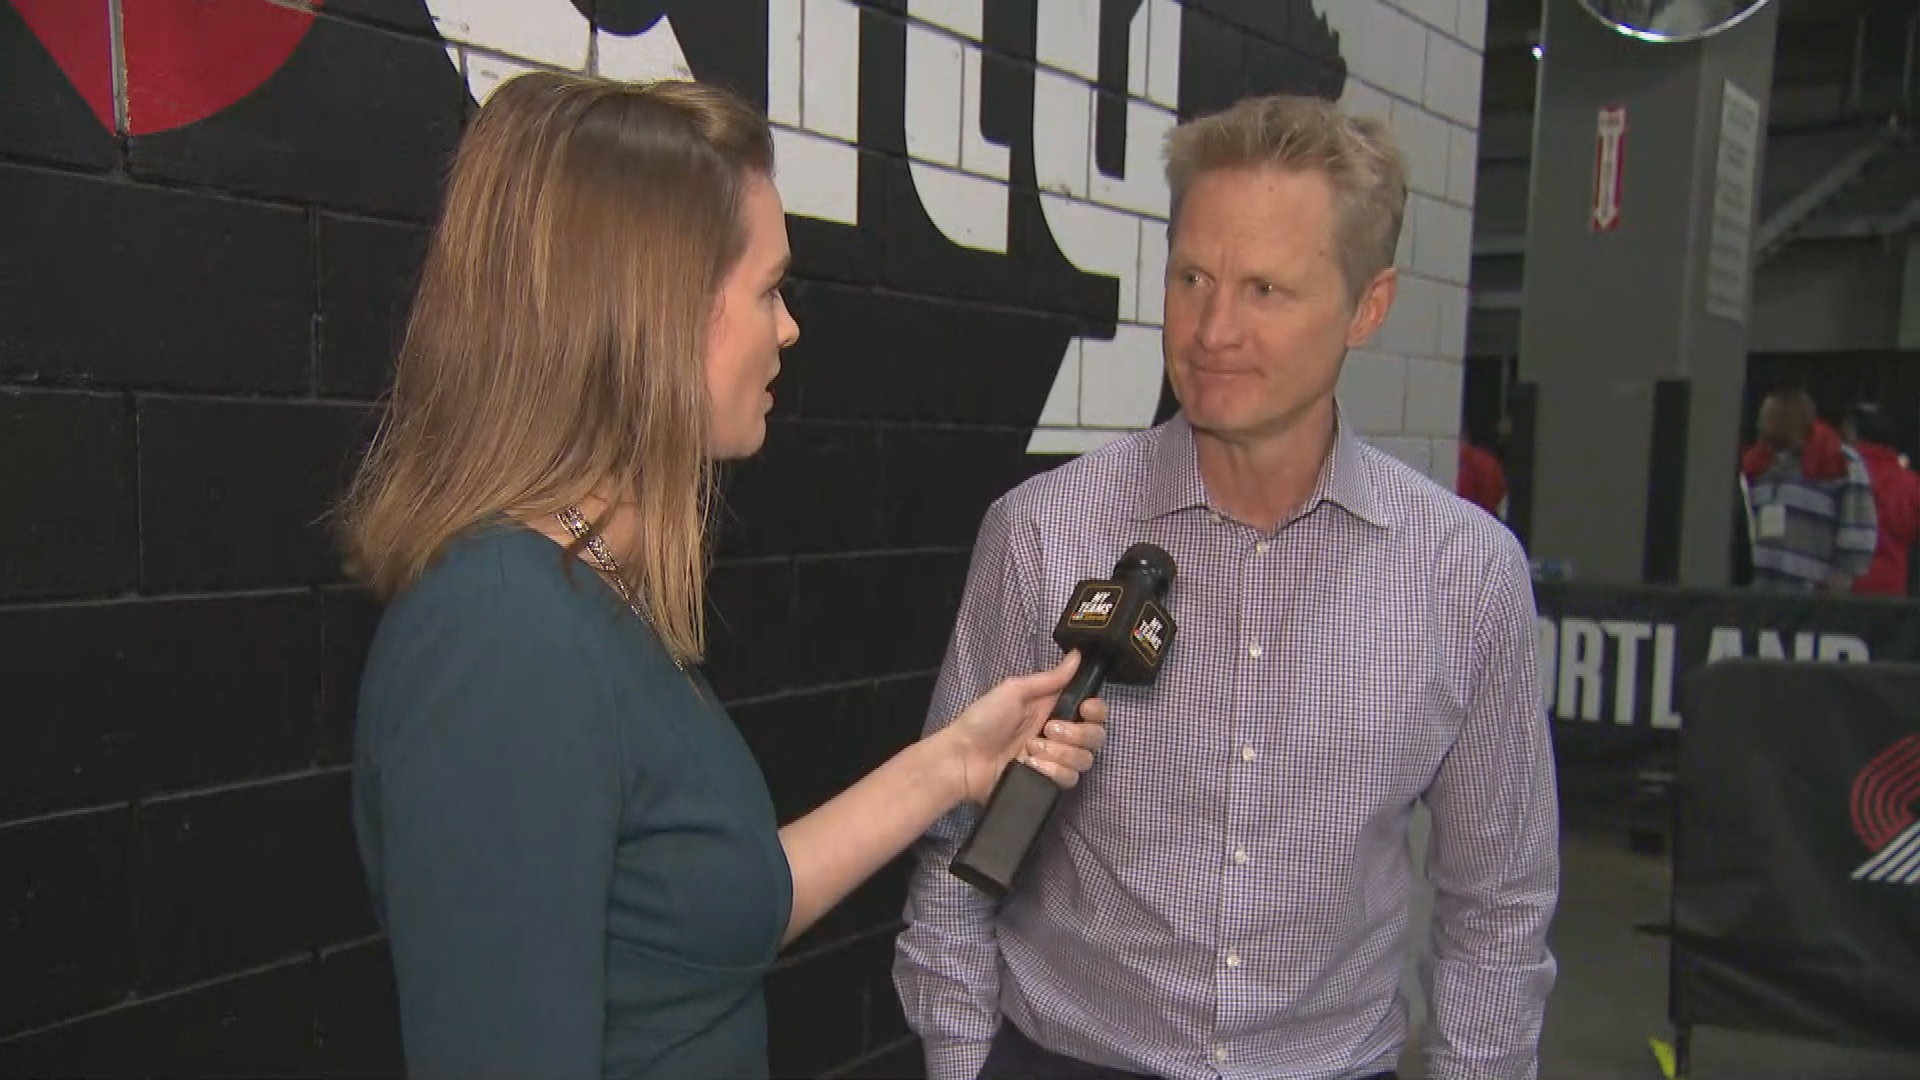 Steve Kerr feels 'incredible' after yet another NBA Finals appearance